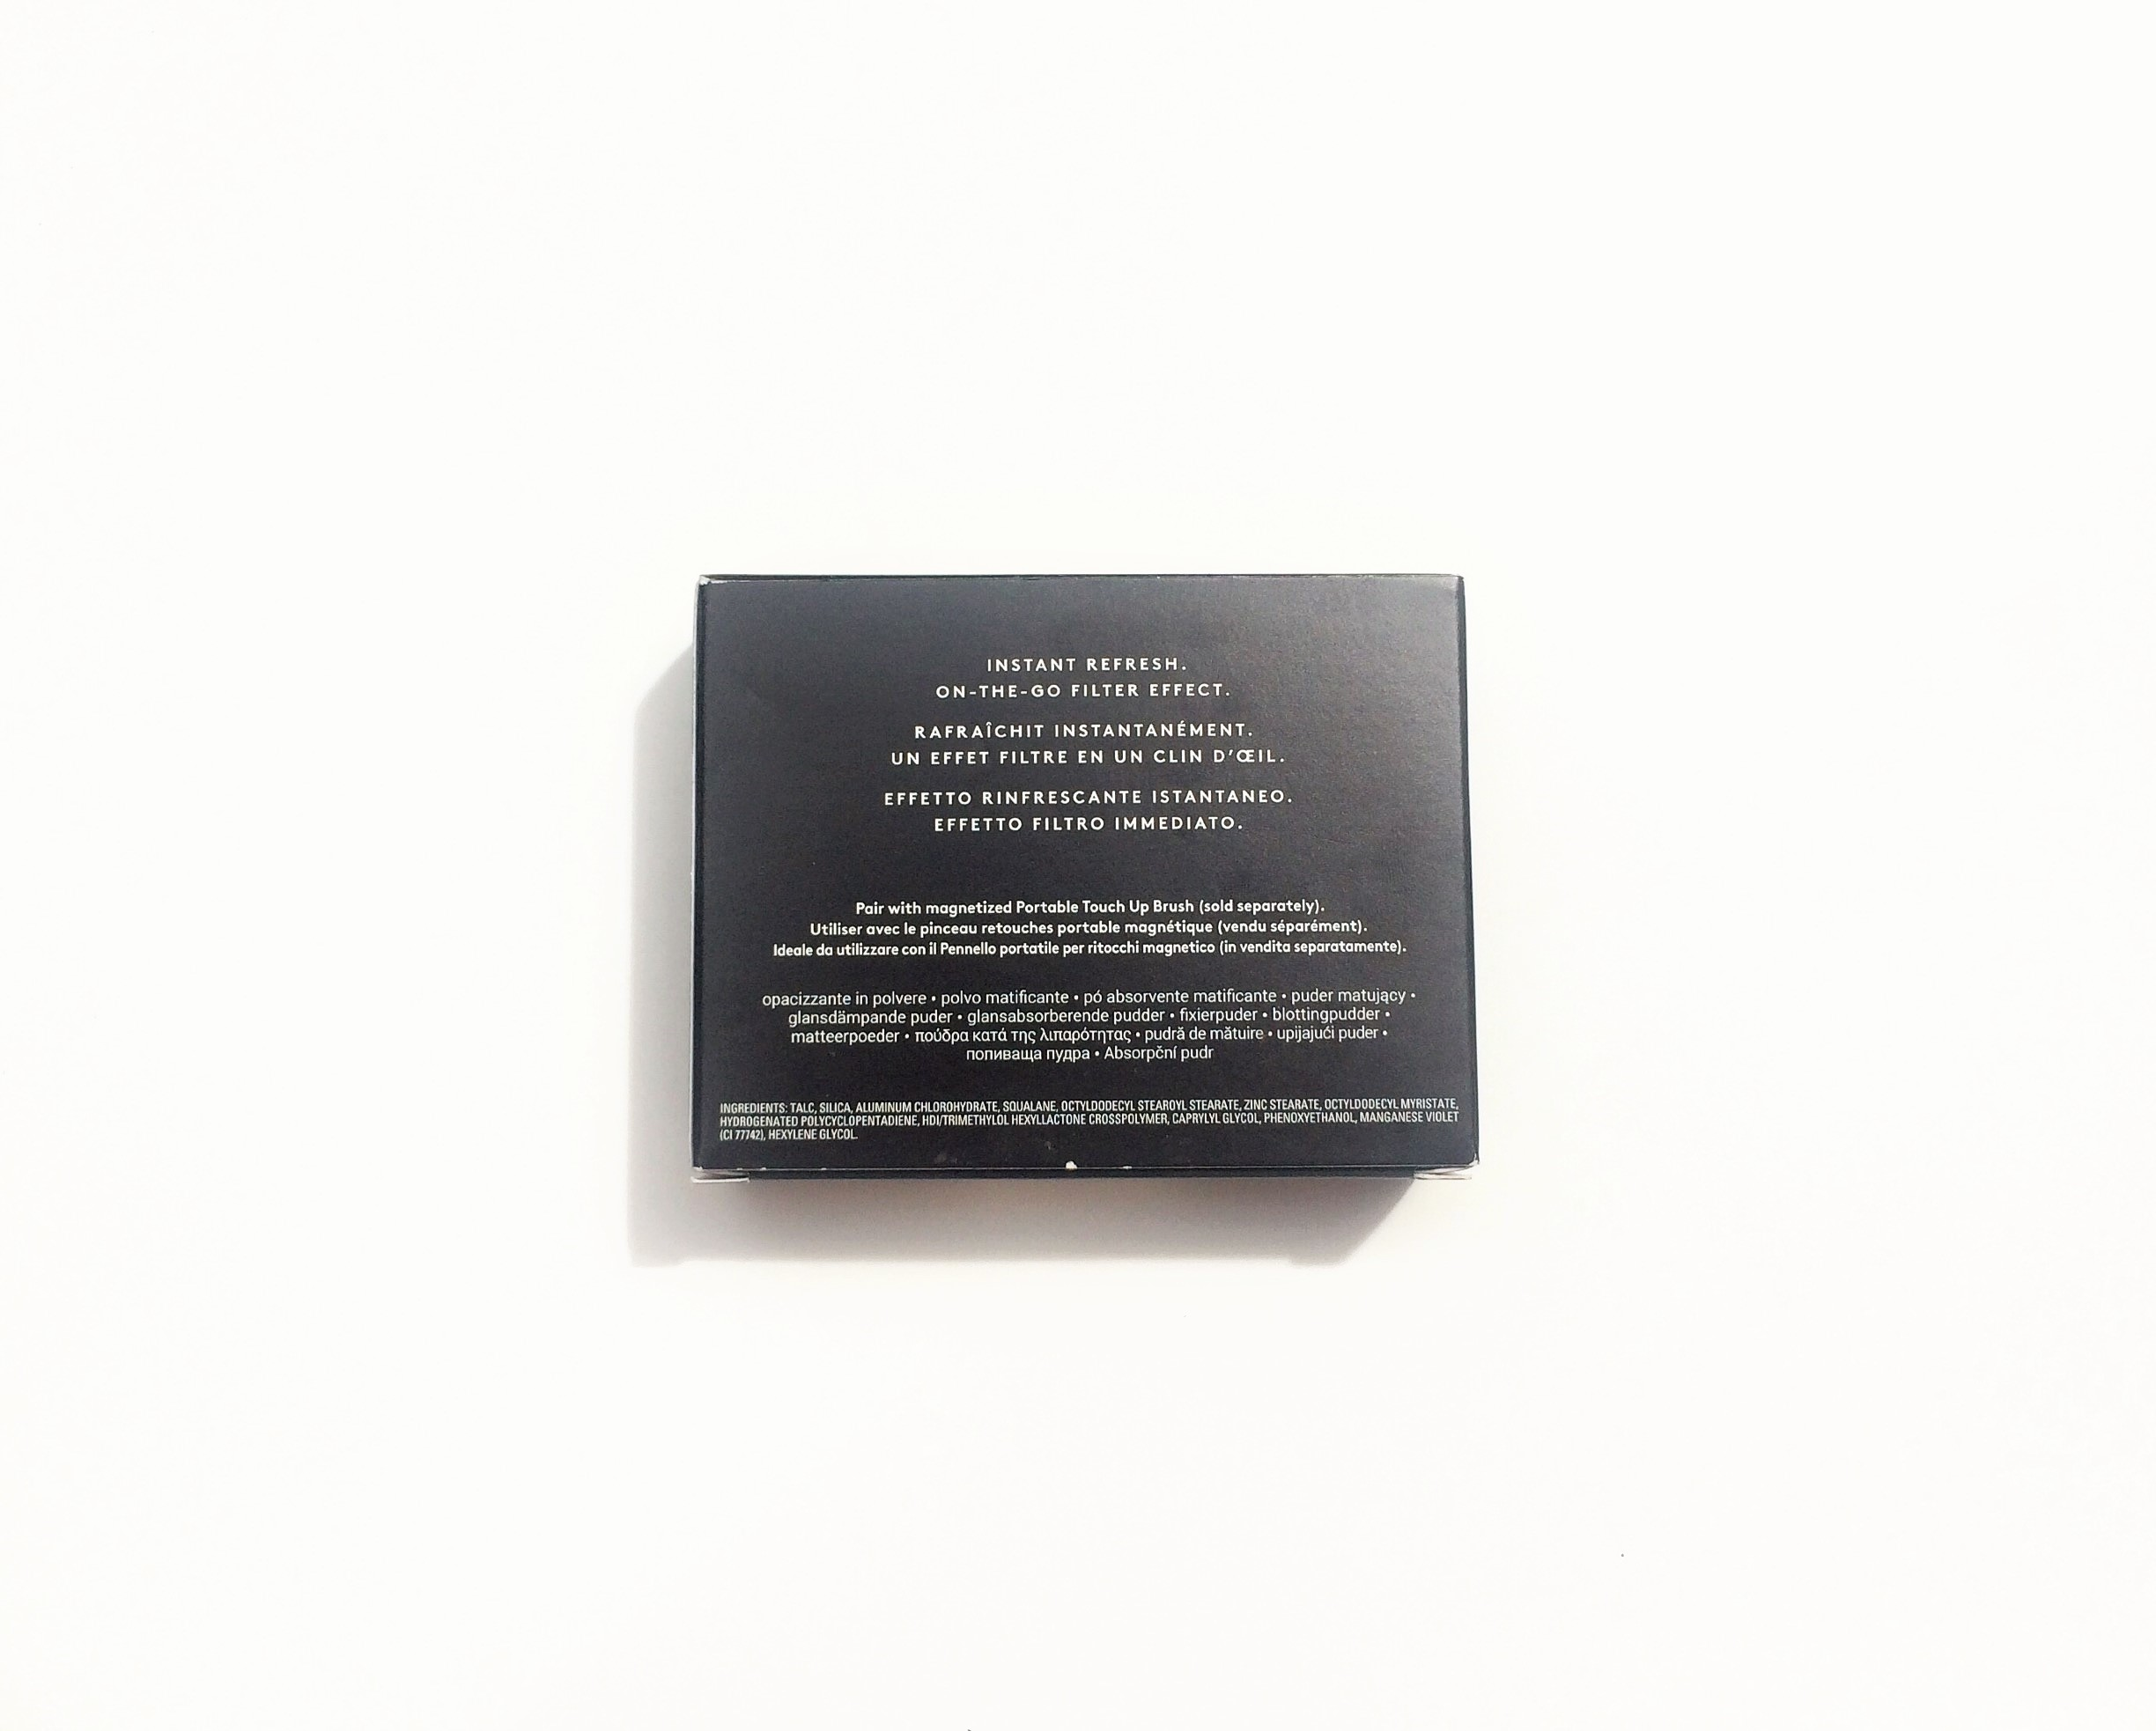 Review Fenty Invisimatte Blotting Powder (3)